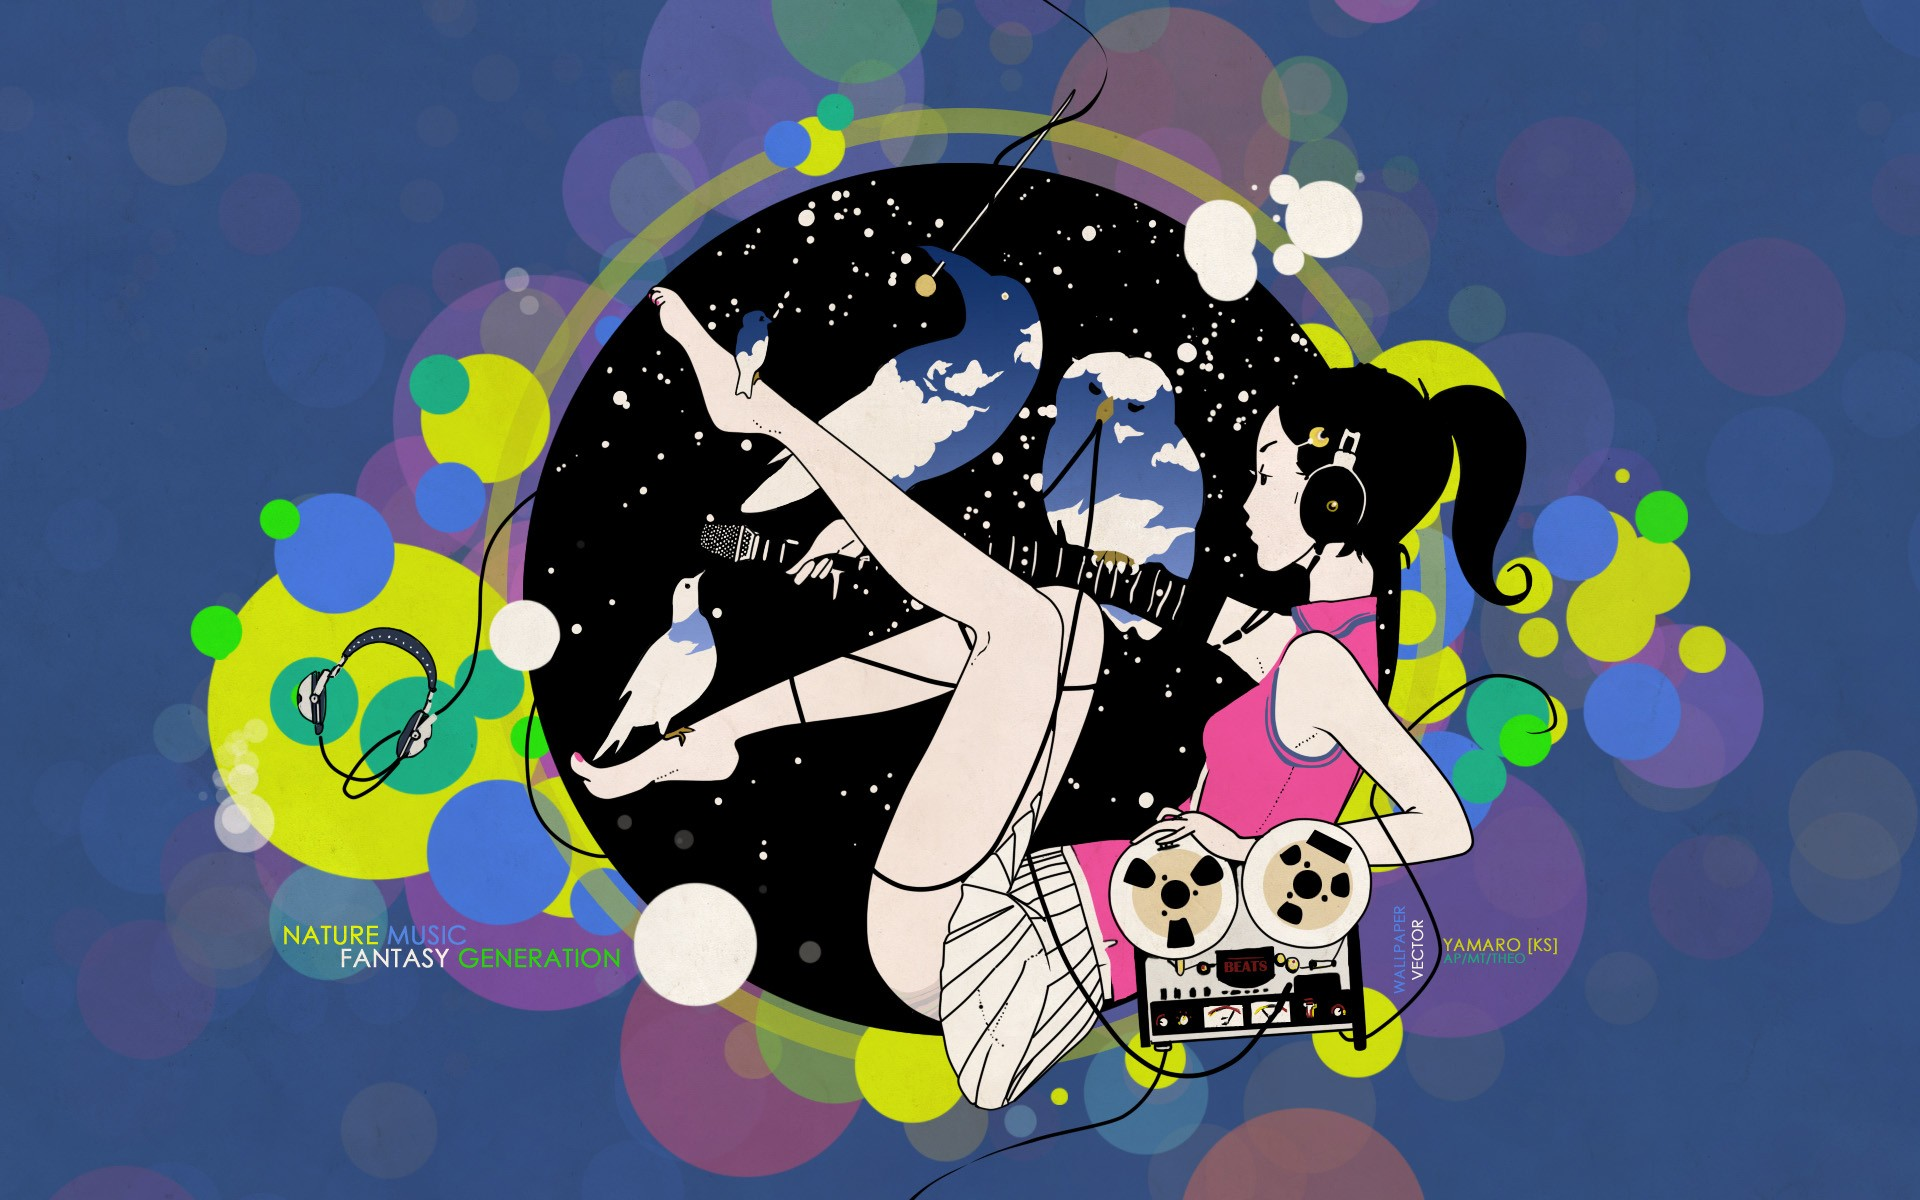 Girl Generation Cartoon Wallpaper Wallpaper Colorful Illustration Anime Girls Cartoon